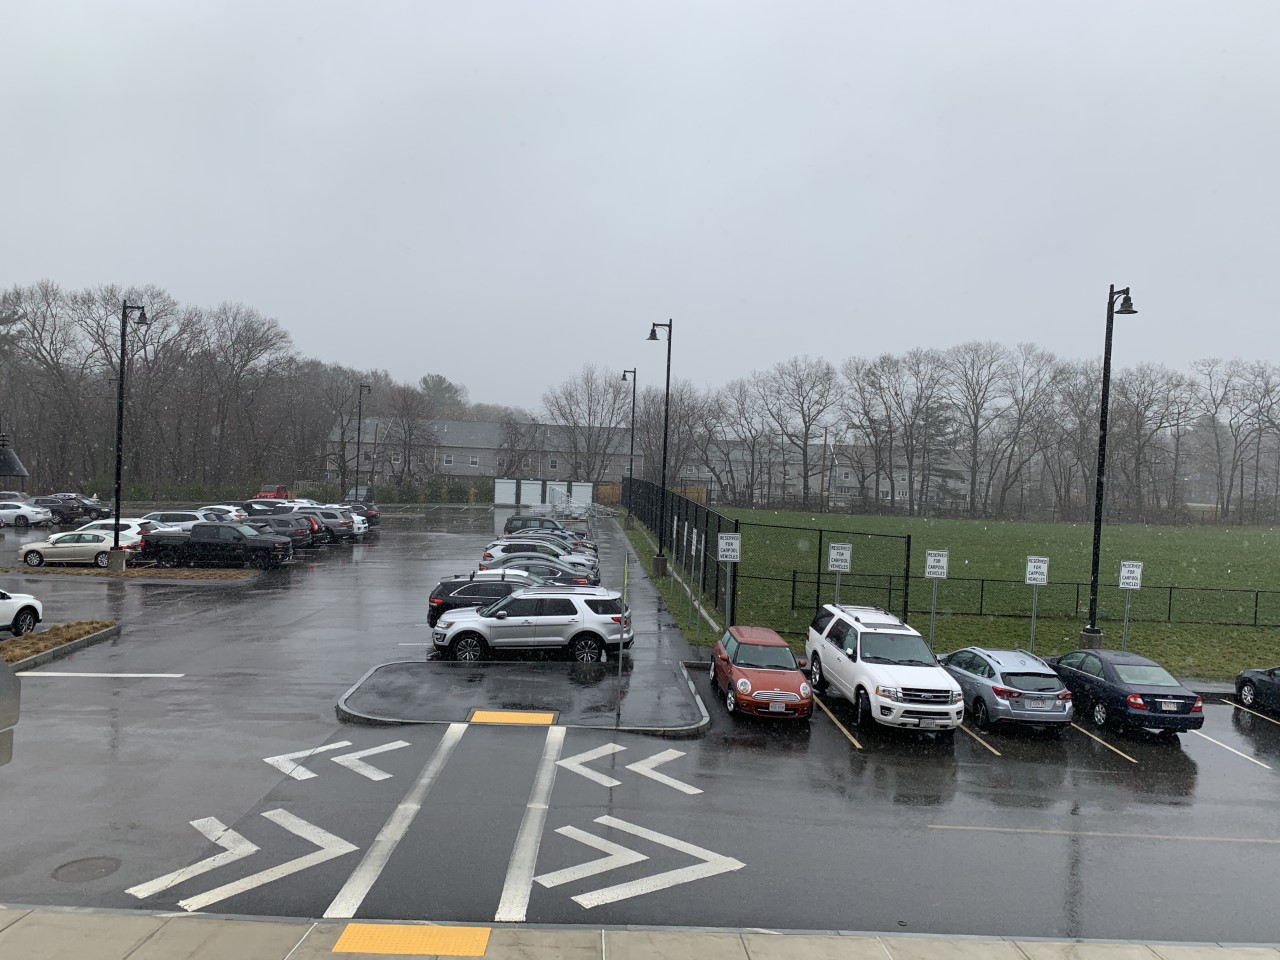 Winter returned on April 16, 2021 with light snow and sweeping rains seen outside of Abington High School.